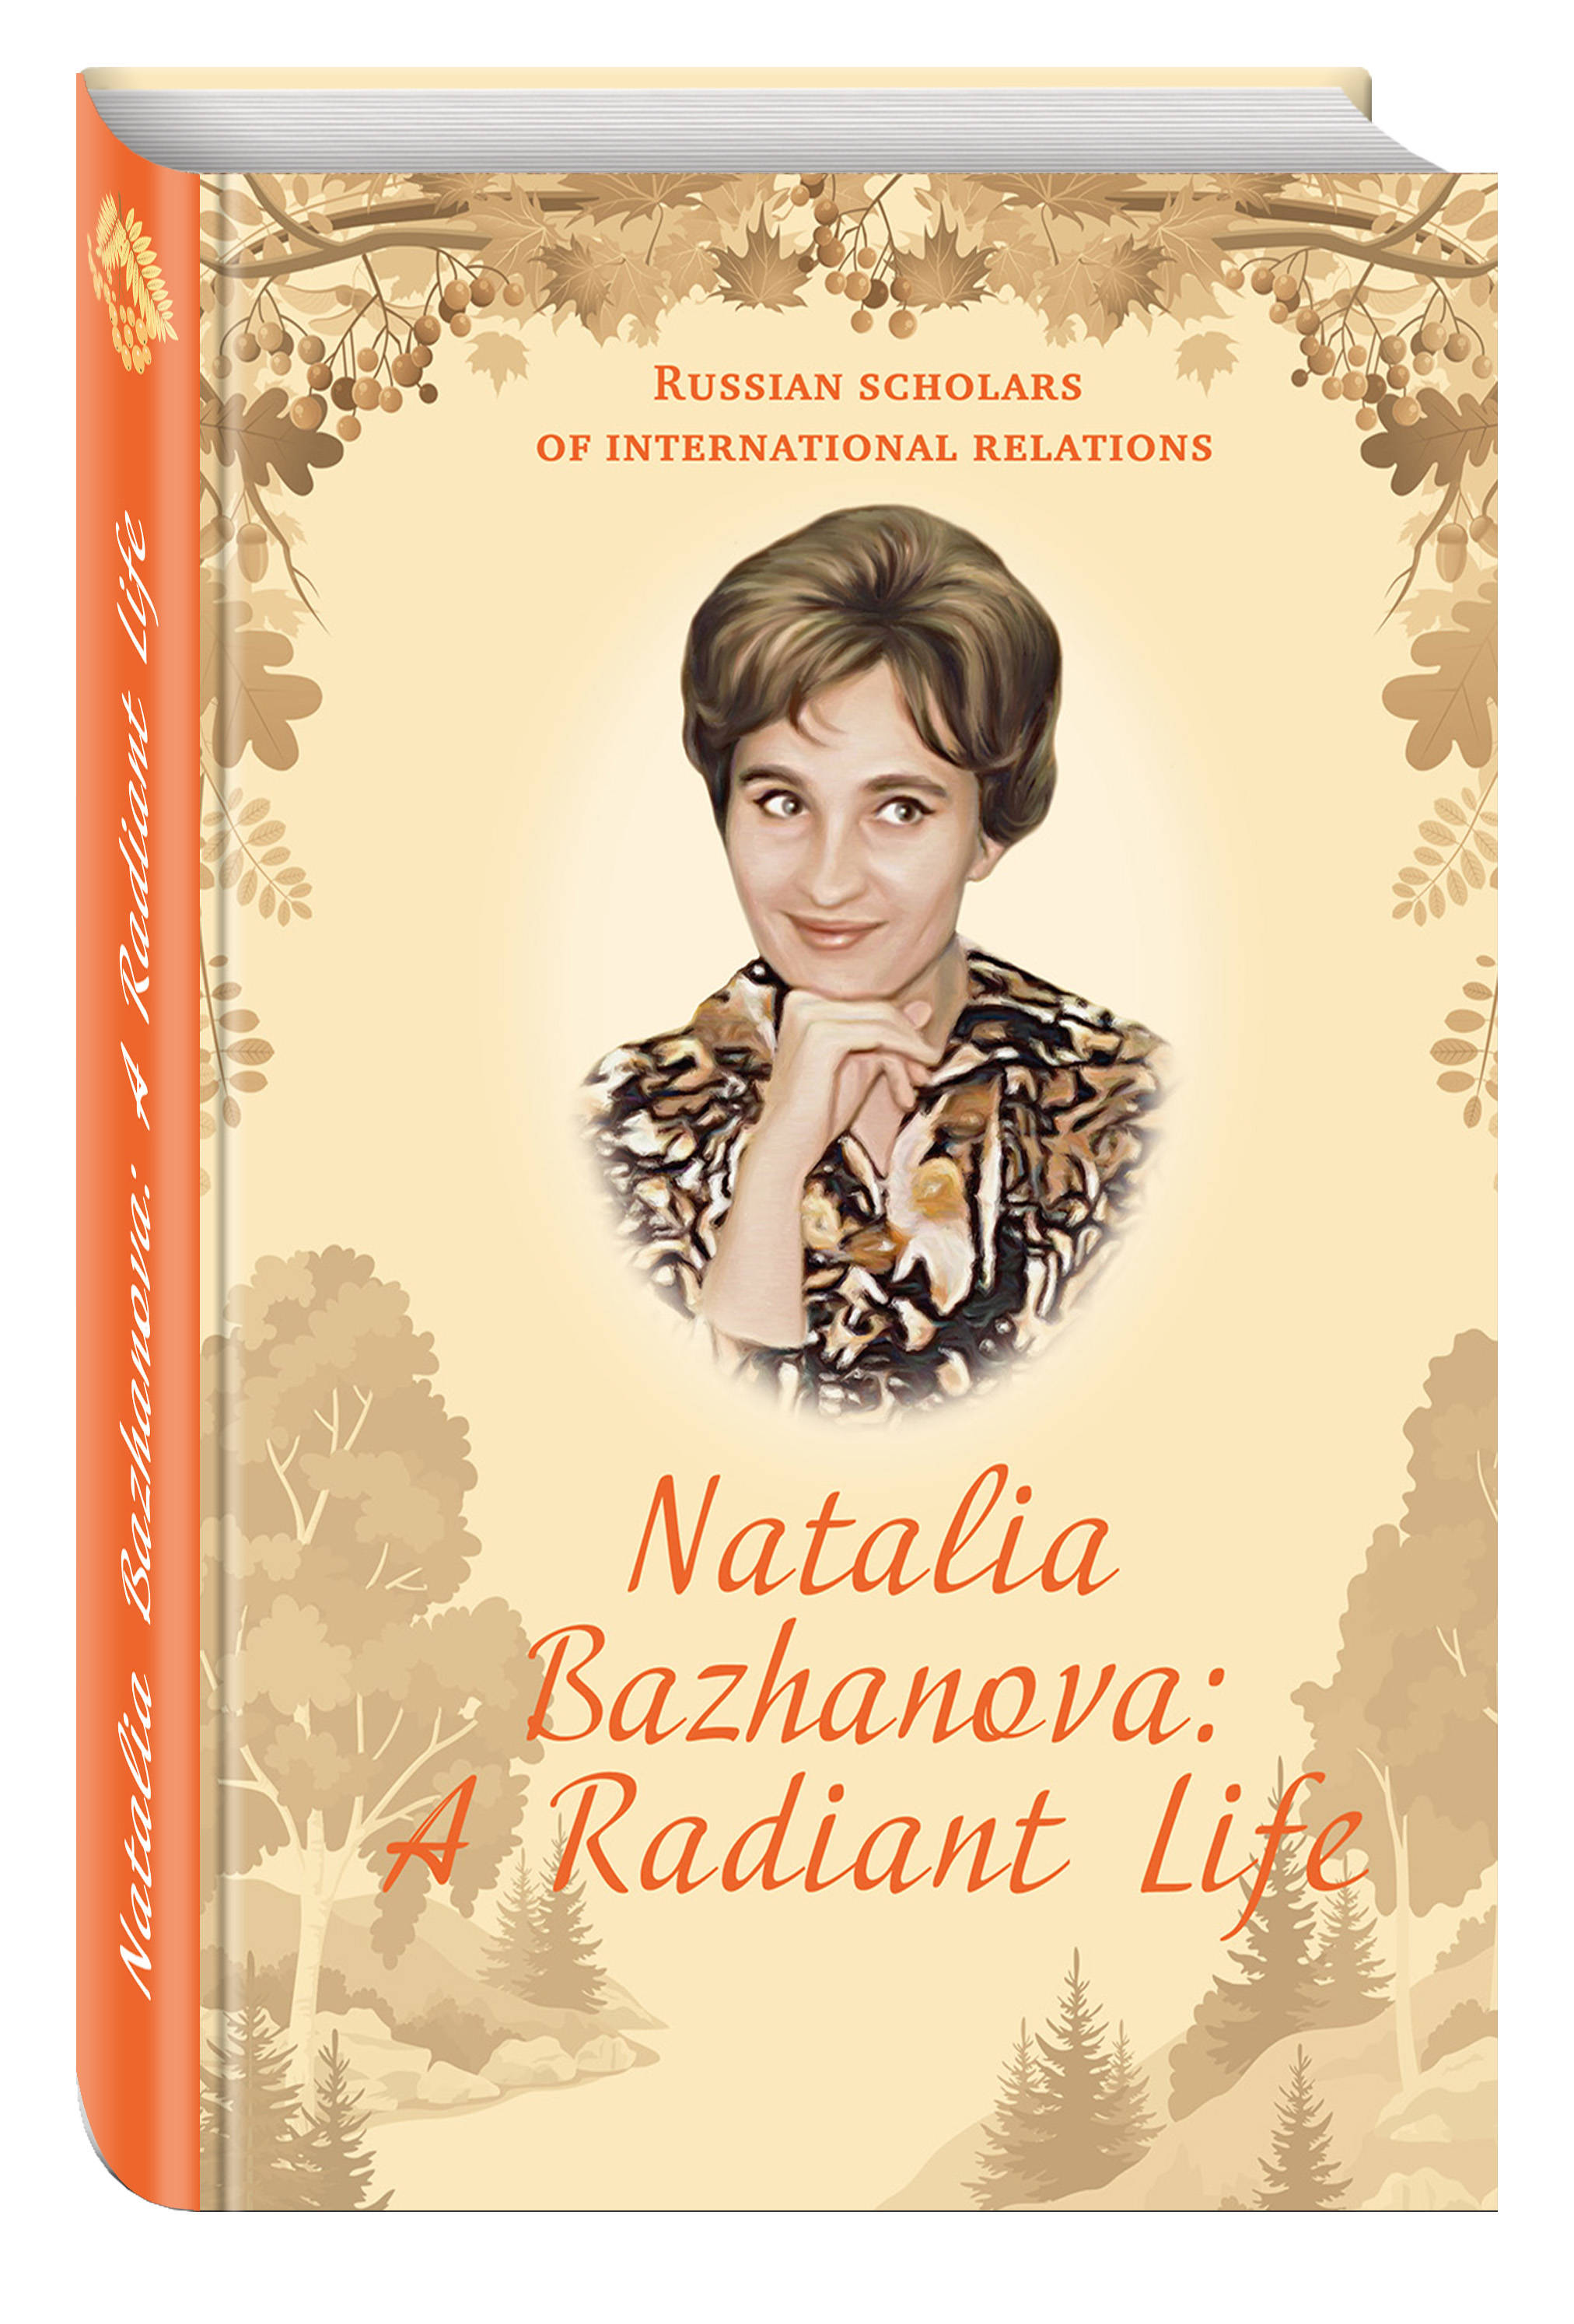 Natalia Bazhanova: A Radiant Life public relations science management